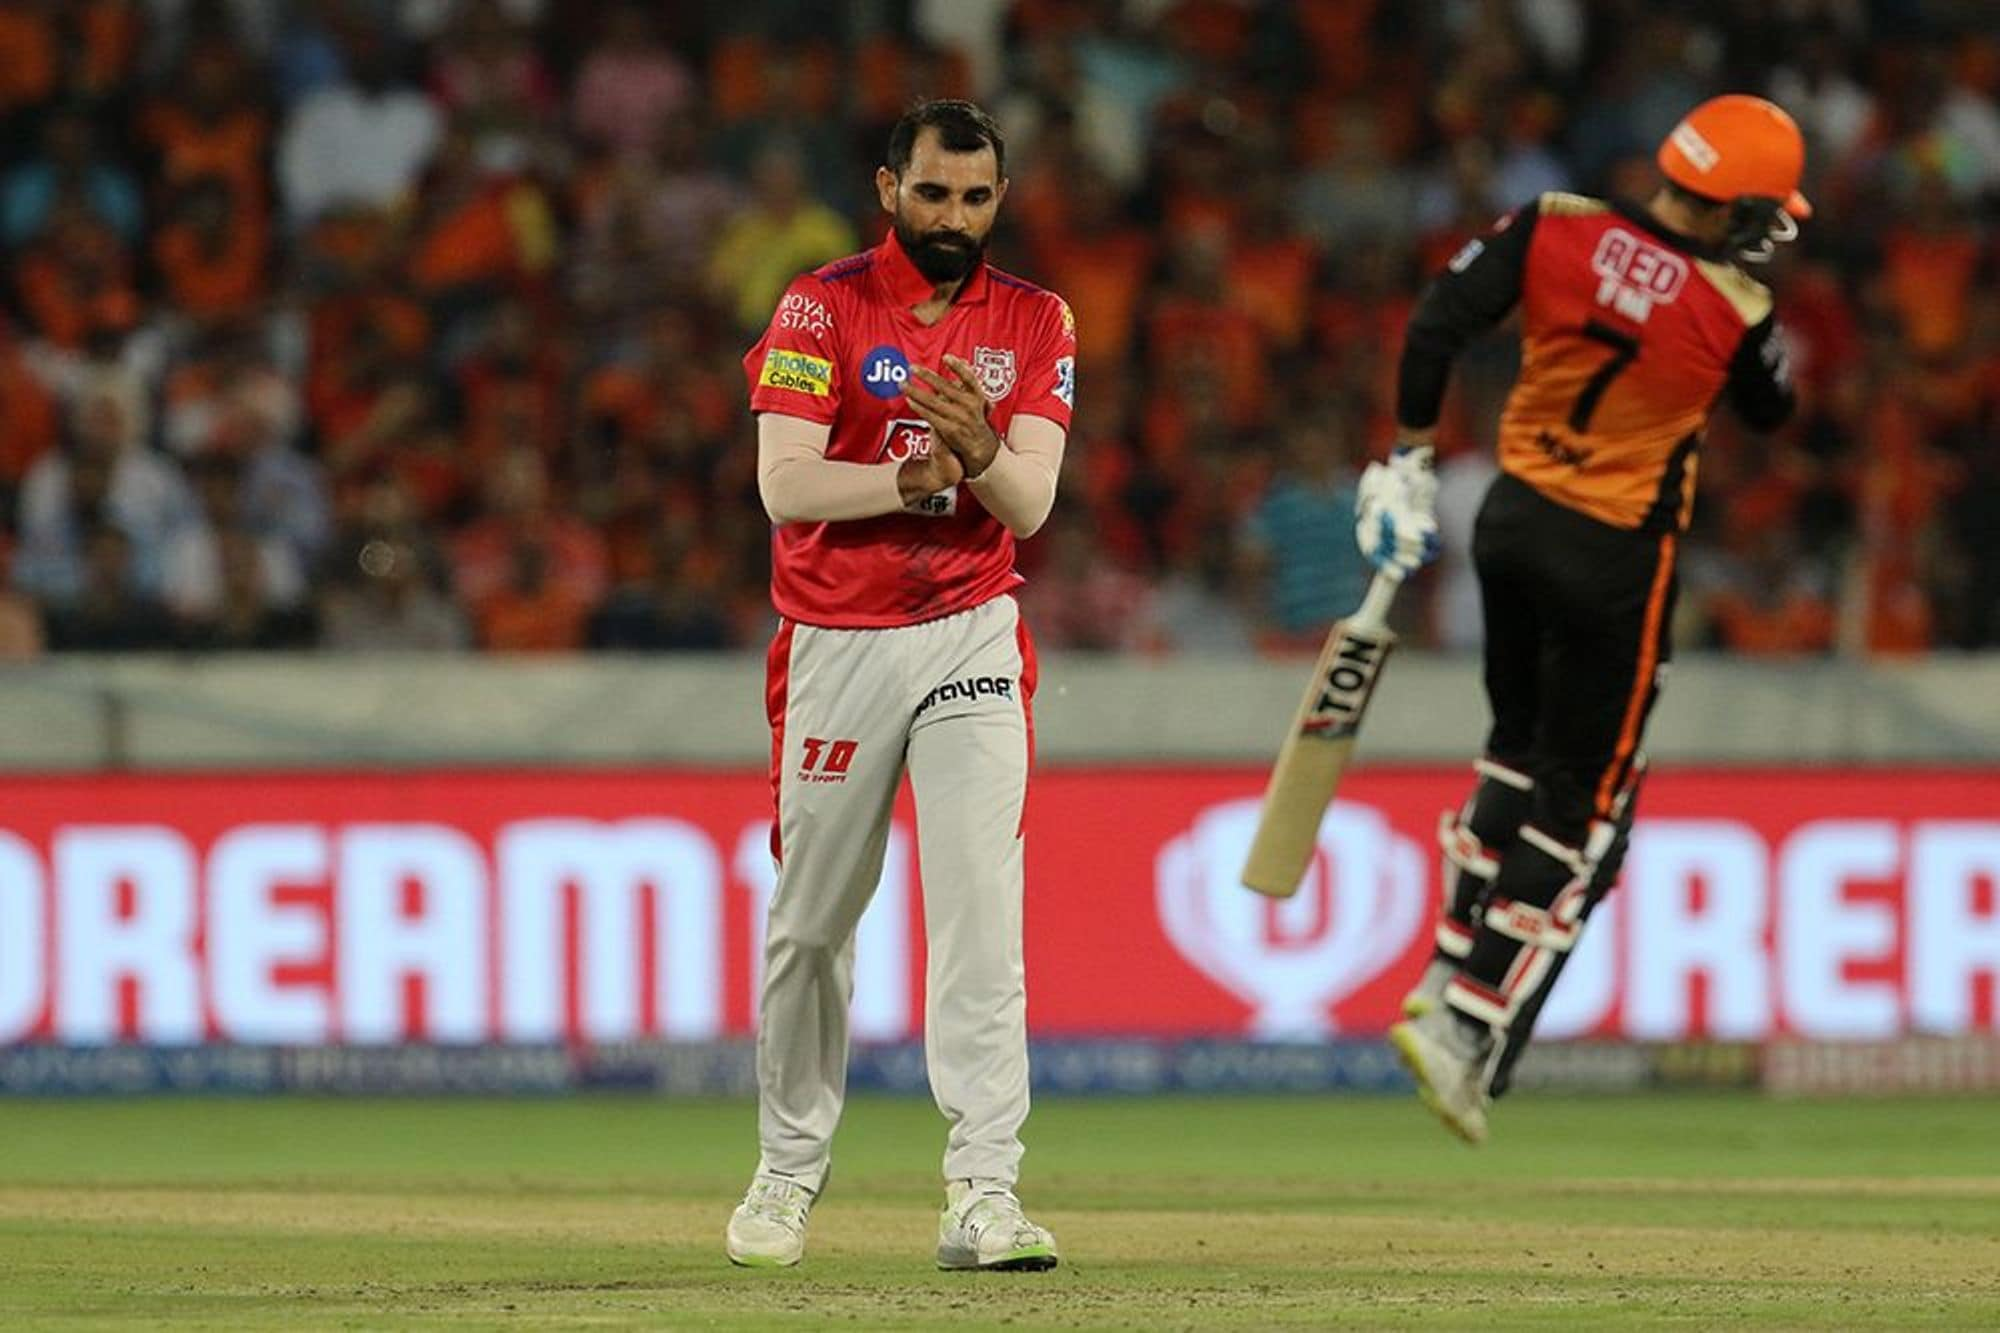 In Pics, Match 48, Sunrisers Hyderabad vs Kings XI Punjab